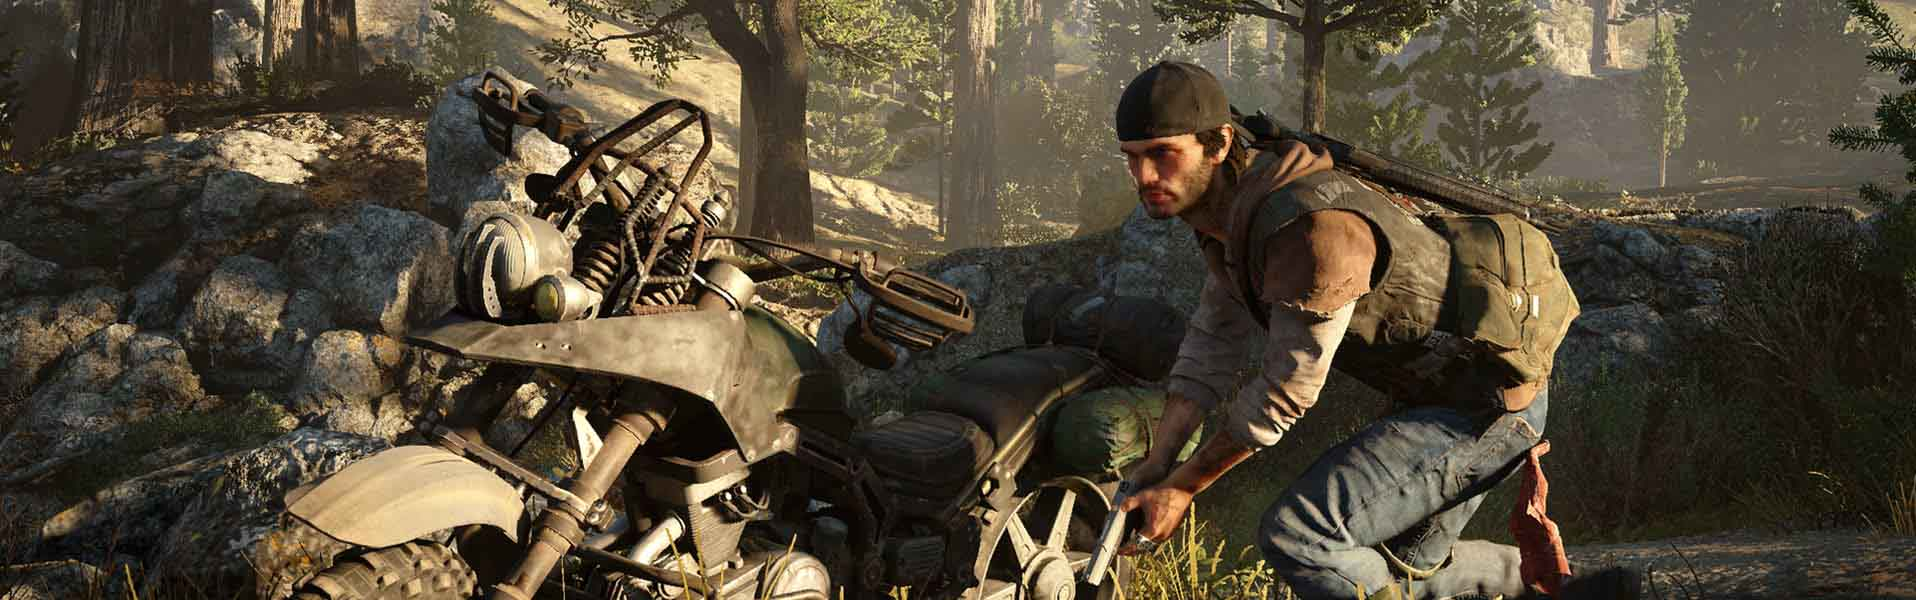 Days Gone Release Date, Trailer, News and Rumors